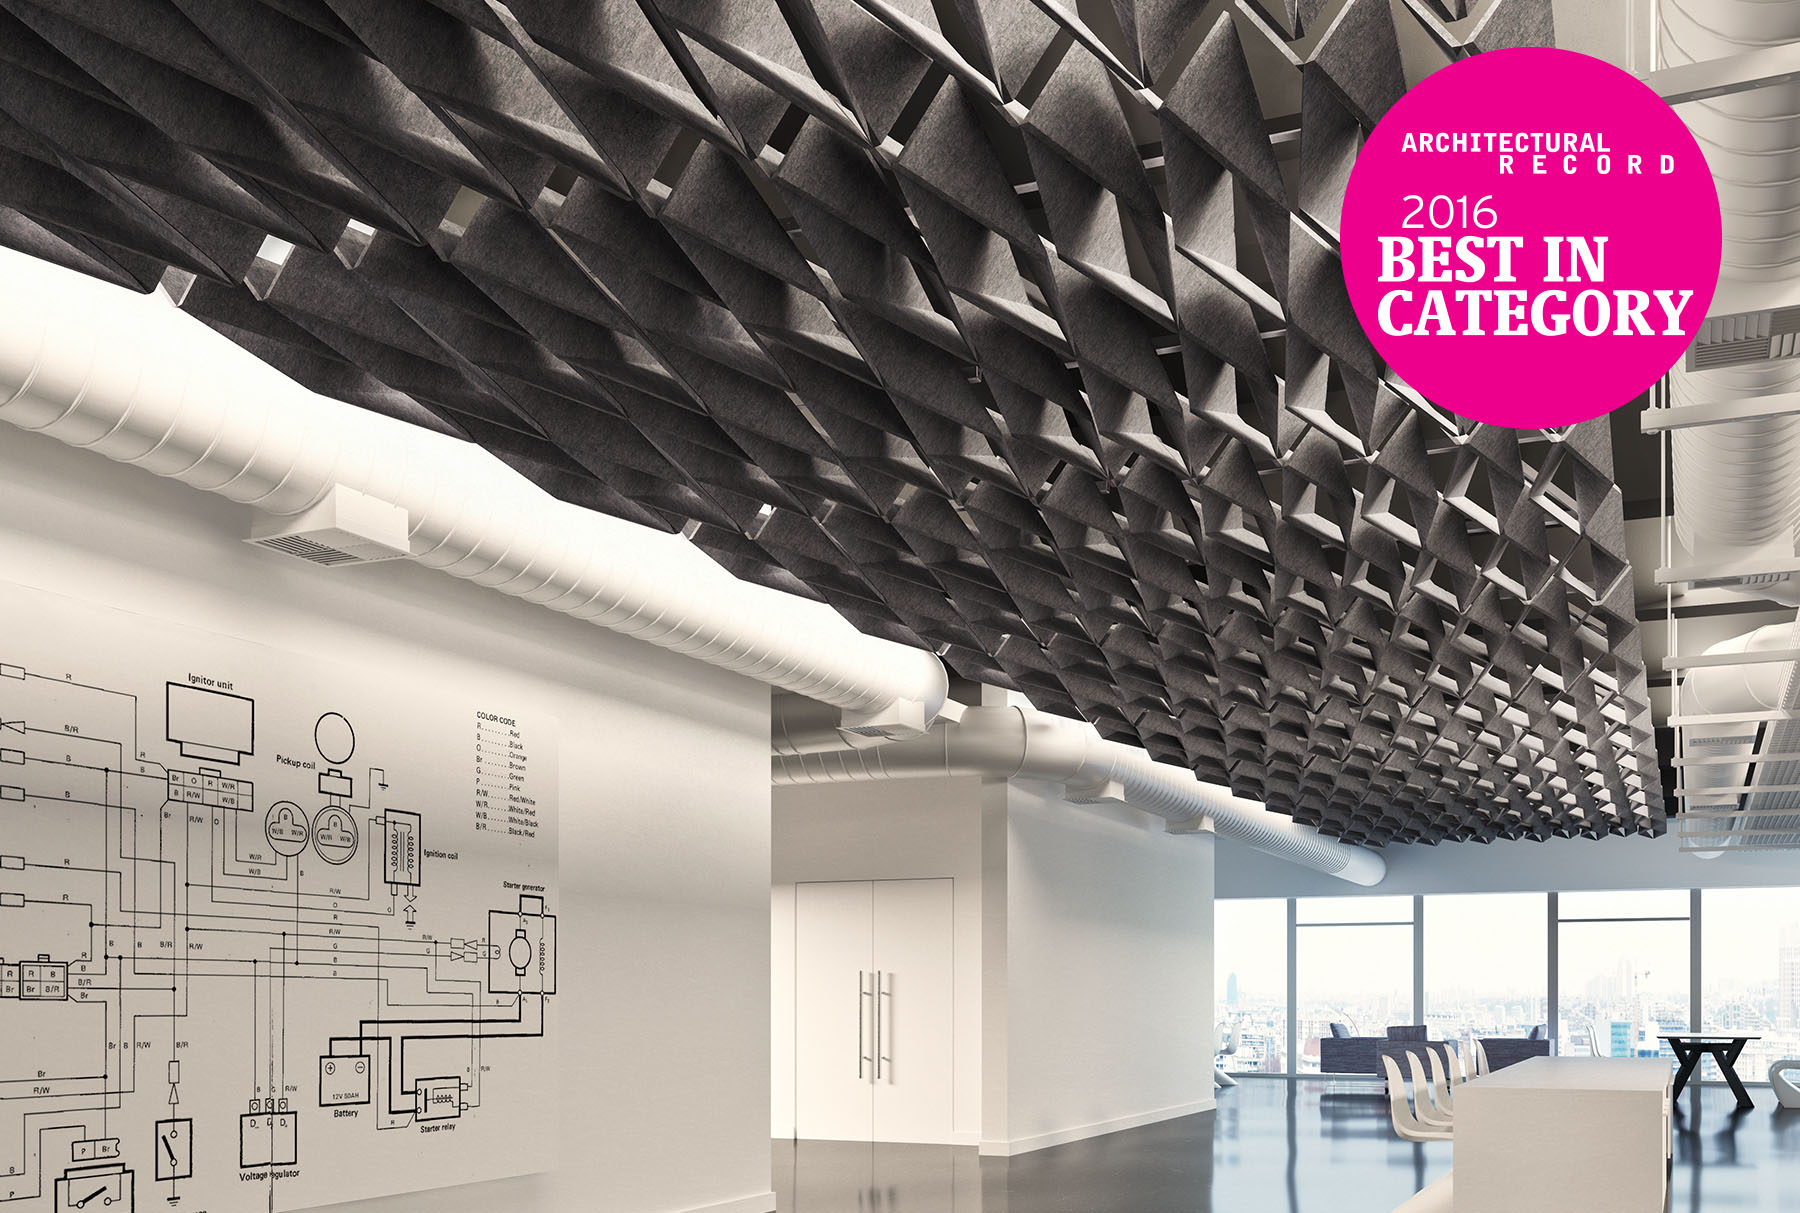 SoftFold Modular Ceilings